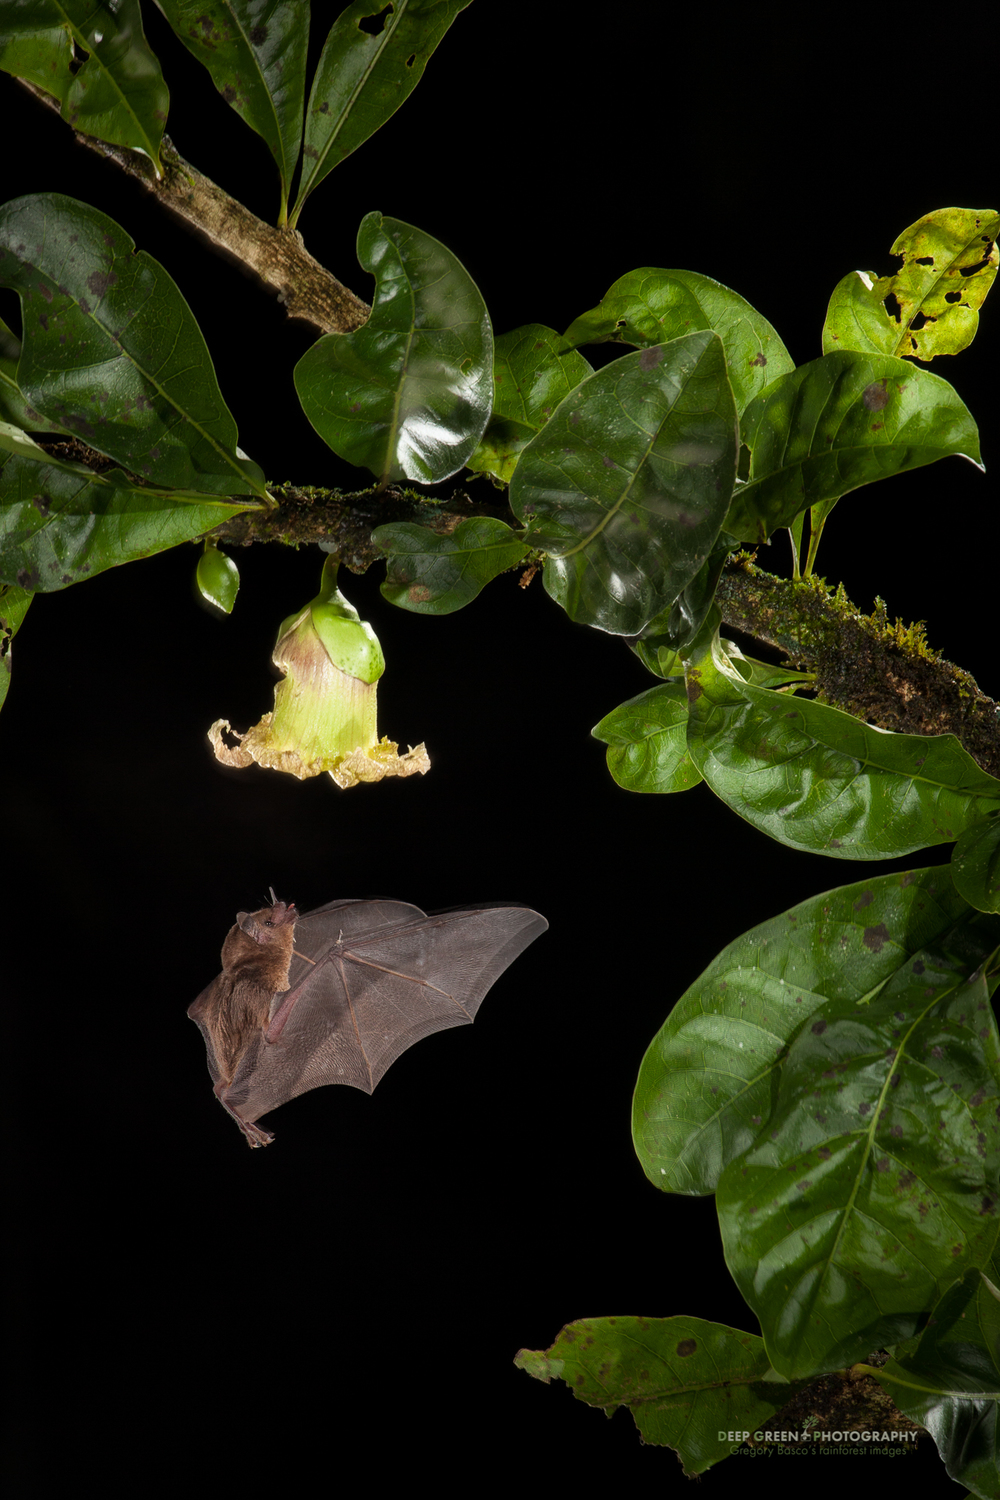 A Pallas' long-tongued bat pollinates a Calabash tree flower in a lowland rainforest